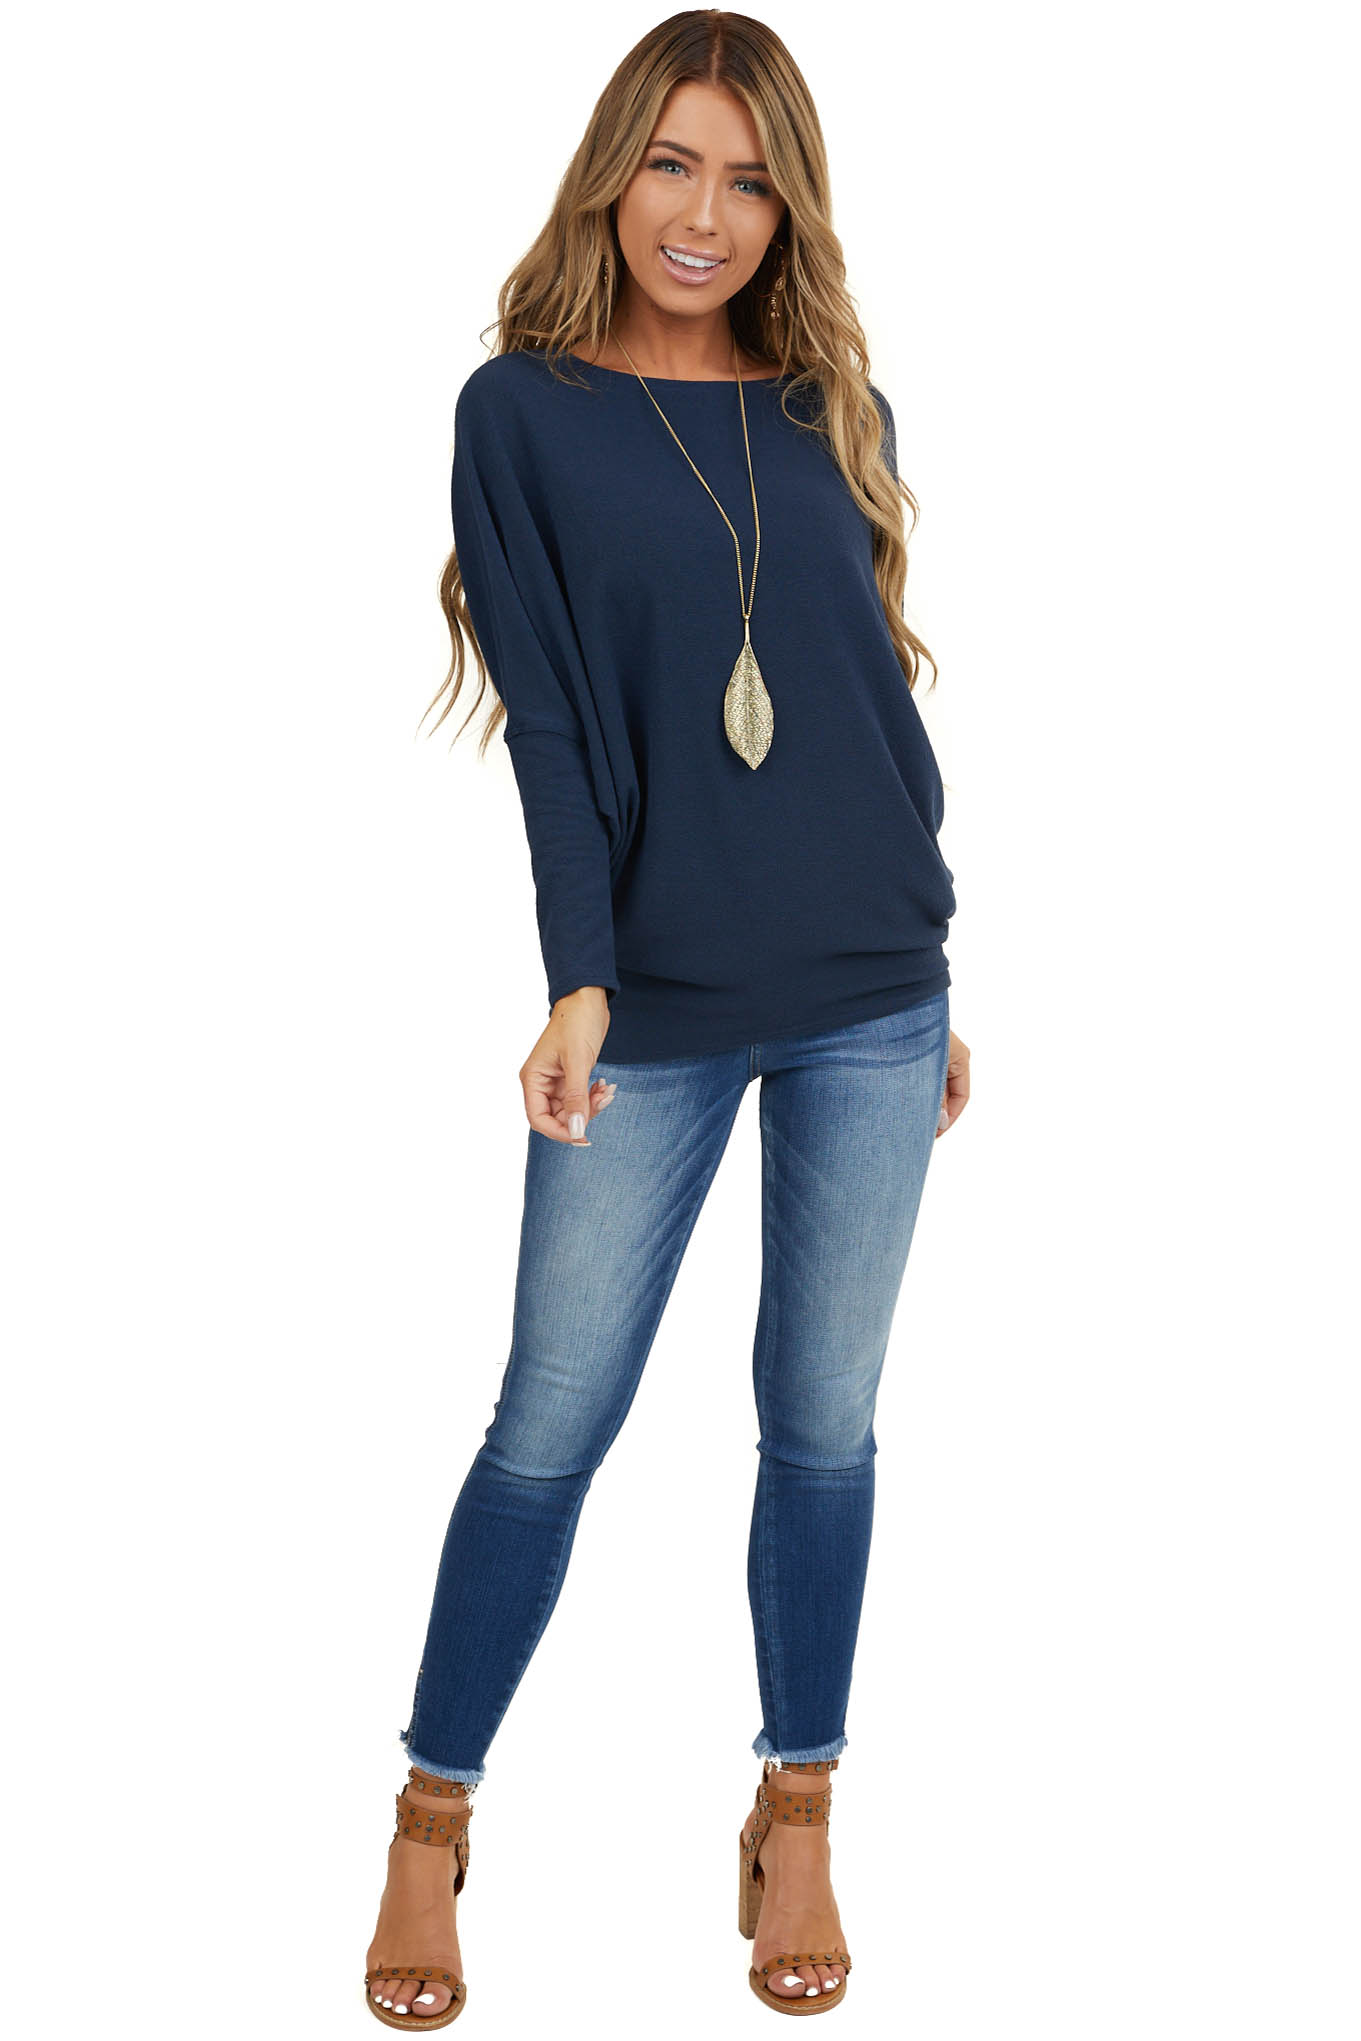 Navy Blue Round Neck Knit Top with Long Dolman Sleeves